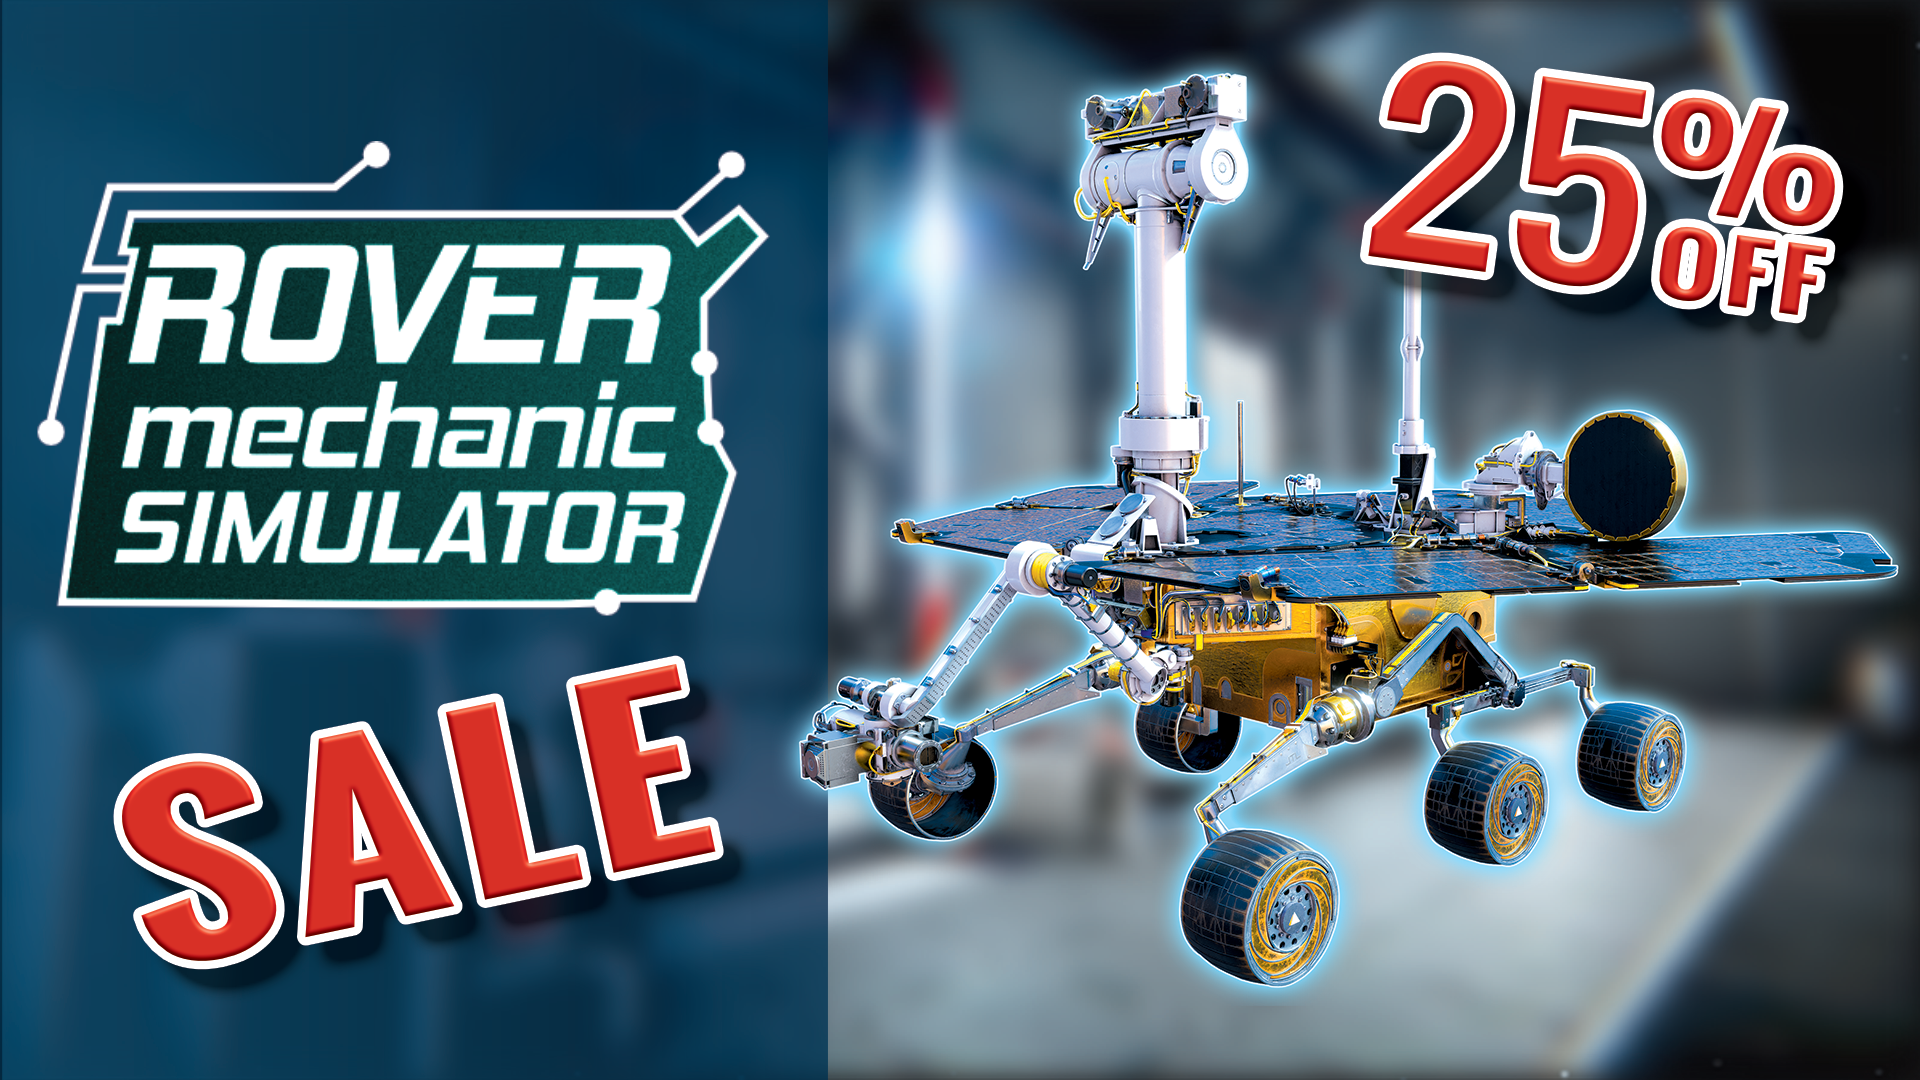 Rover Mechanic Simulator is on sale